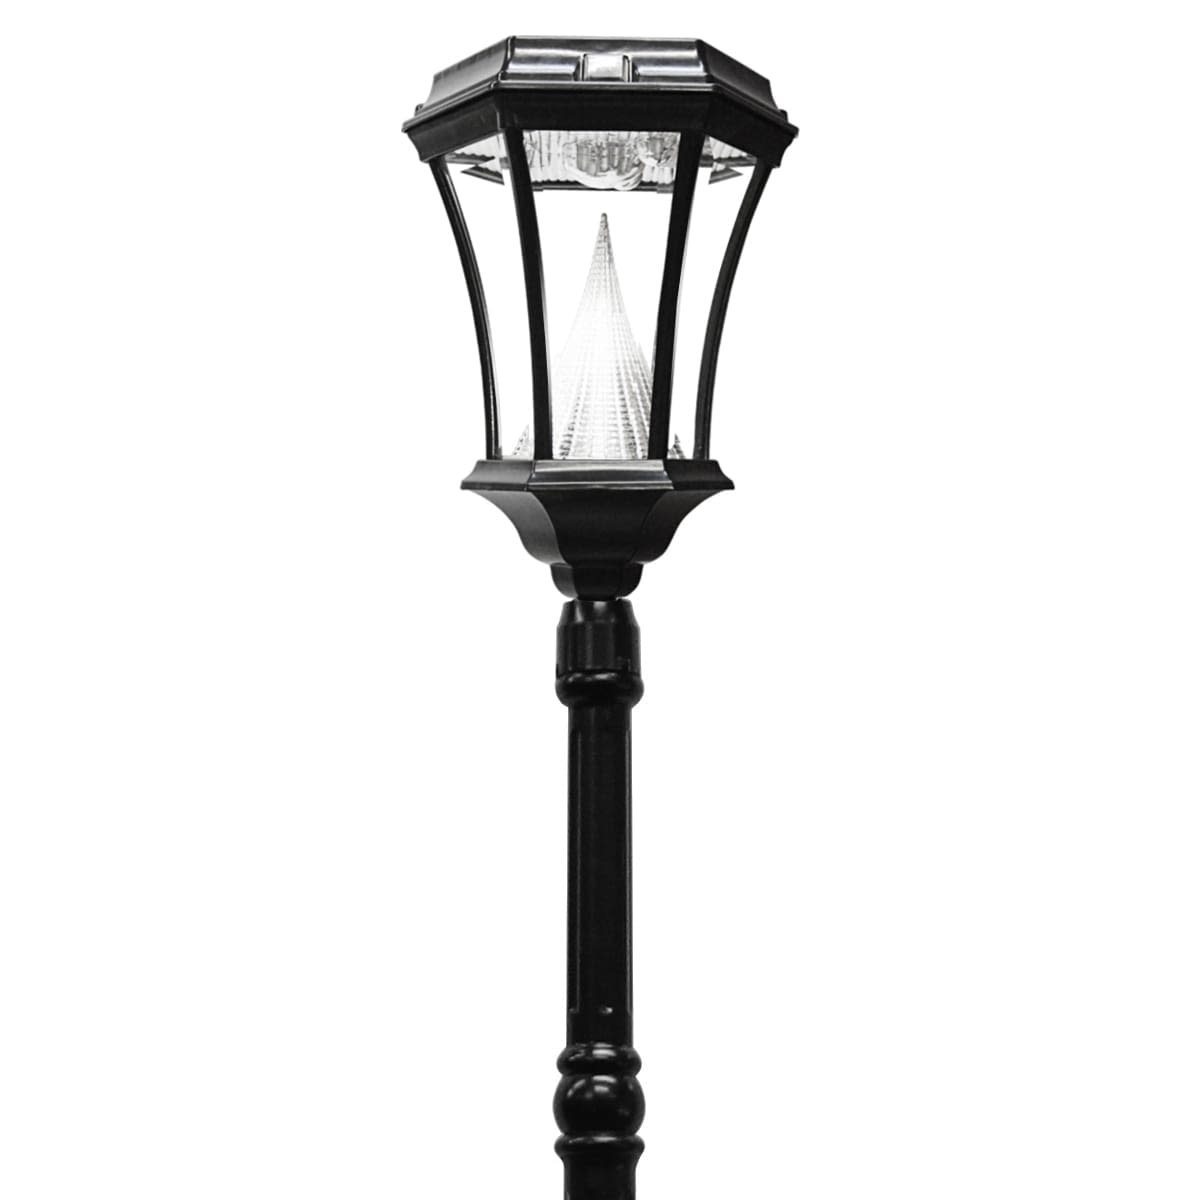 Victorian Solar Lamp Post by Gama Sonic GS-94S with Solar Motion Sensor